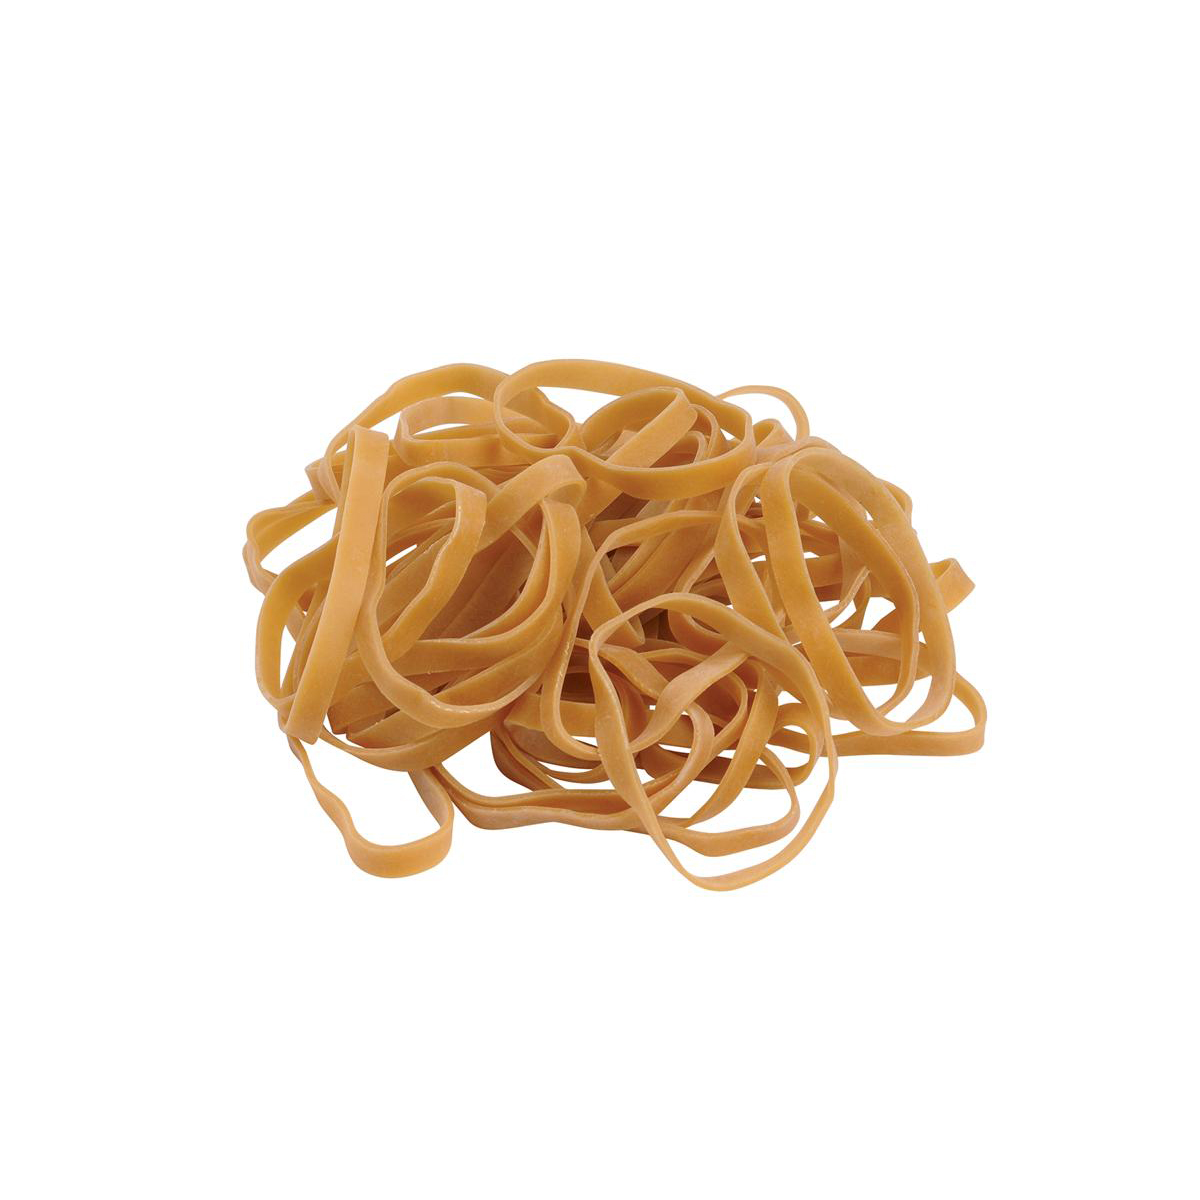 5 Star Office Rubber Bands No.63 Each 76x6mm Approx 400 Bands Bag 0.454kg